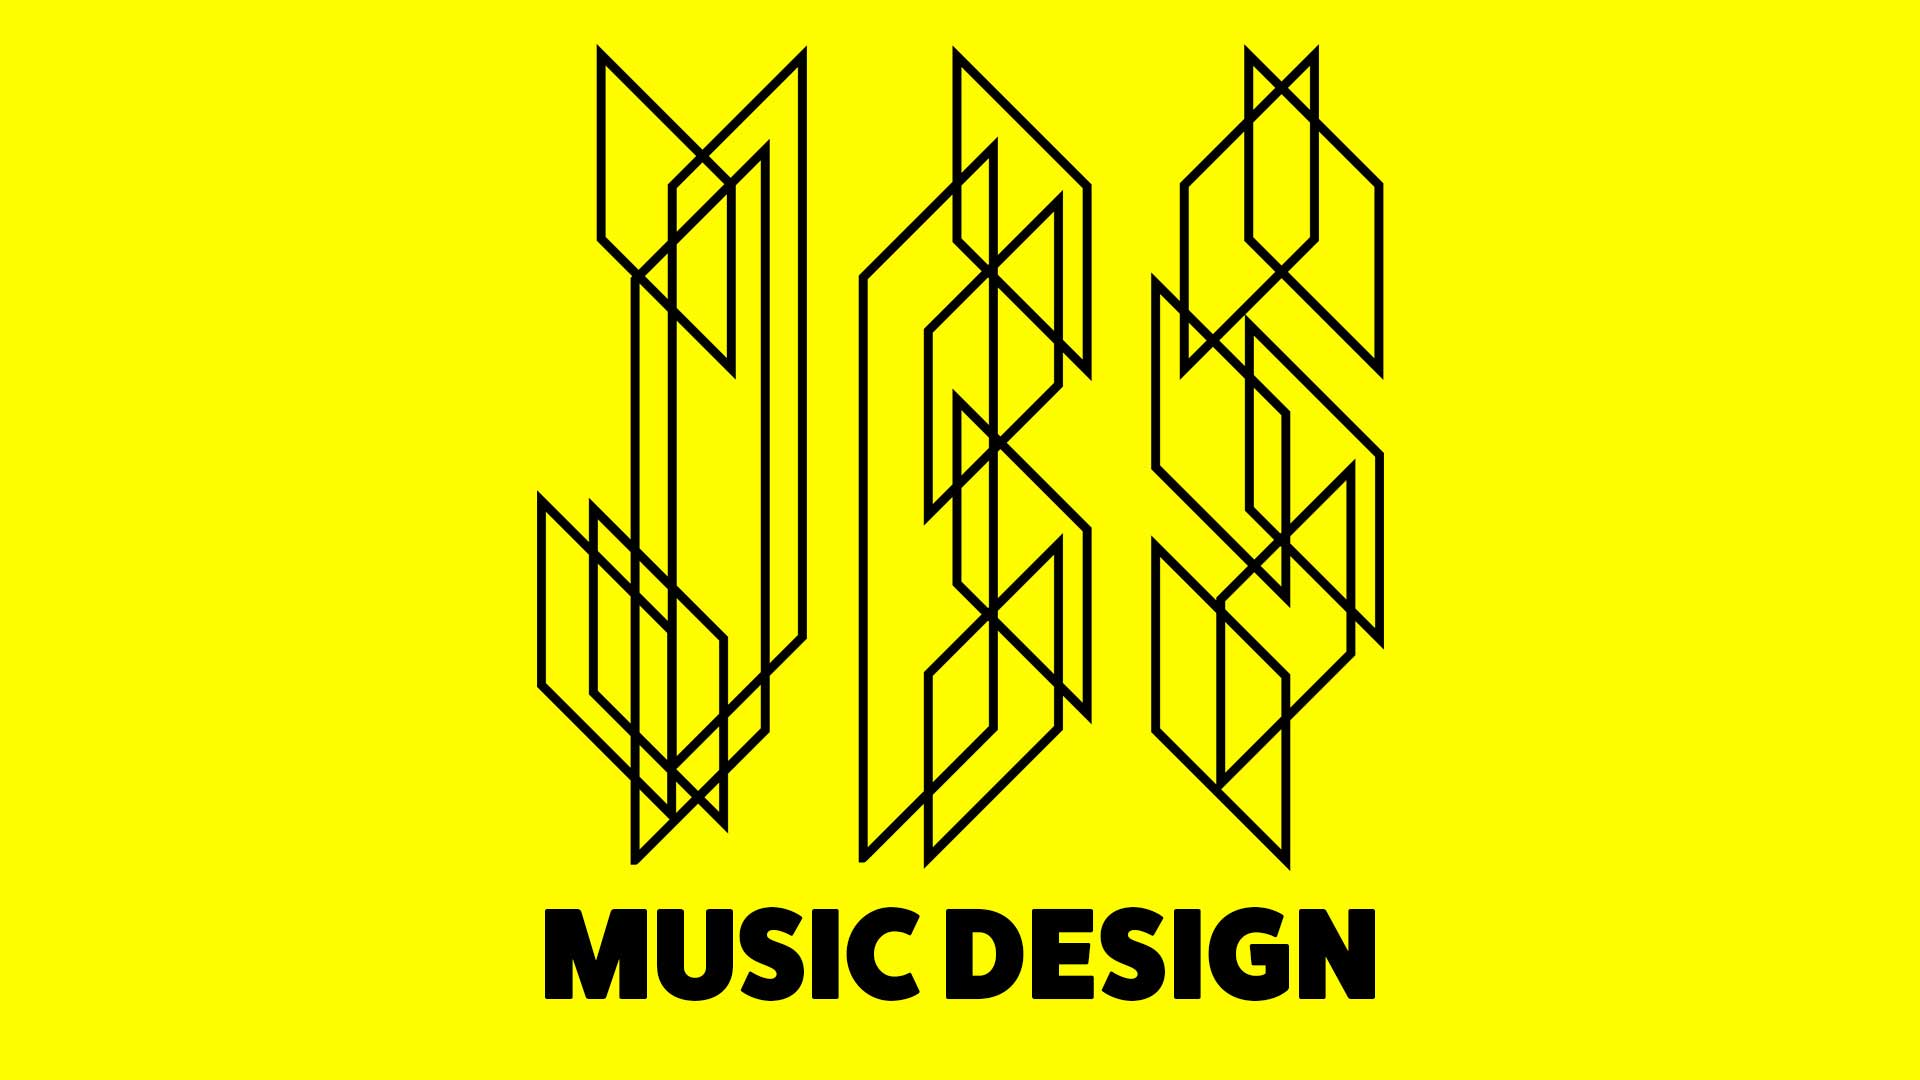 JBS Music Design Header Logo in Black and Yellow